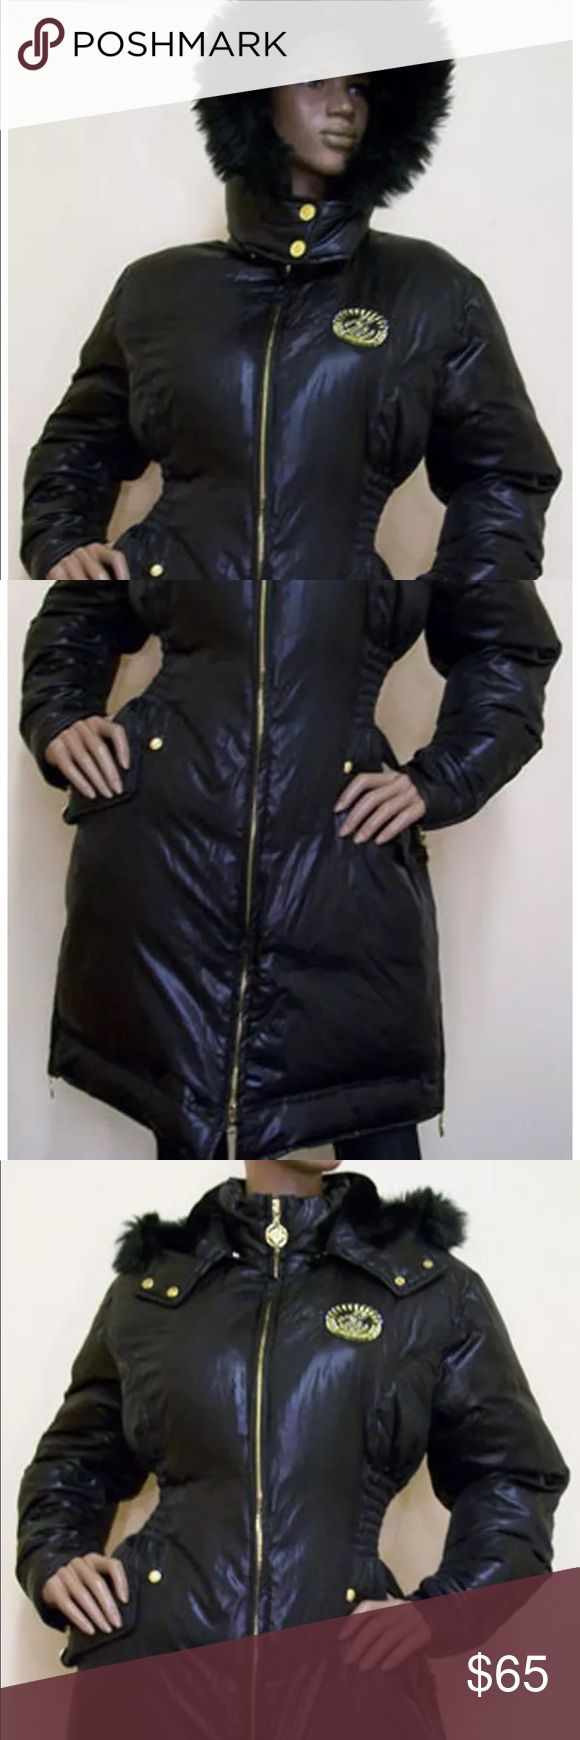 Ladies Rocawear Black Long Puffer Down Coat Beautiful Curvy Long Puffer Down Coat with Removable Hood and Faux Fur Trim by Rocawear. Women's Black Full Zipper Front Closure and Hood Zips Down to Lay Flat. Gold Zippers at Each Cuff and Side Hems. Rocawear Emblem at Crest with Bling!  Shell 100% Nylon, Lining 100% Polyester, Fill 40% Down & 60% Feather. Machine Washable. Rocawear Jackets & Coats Puffers